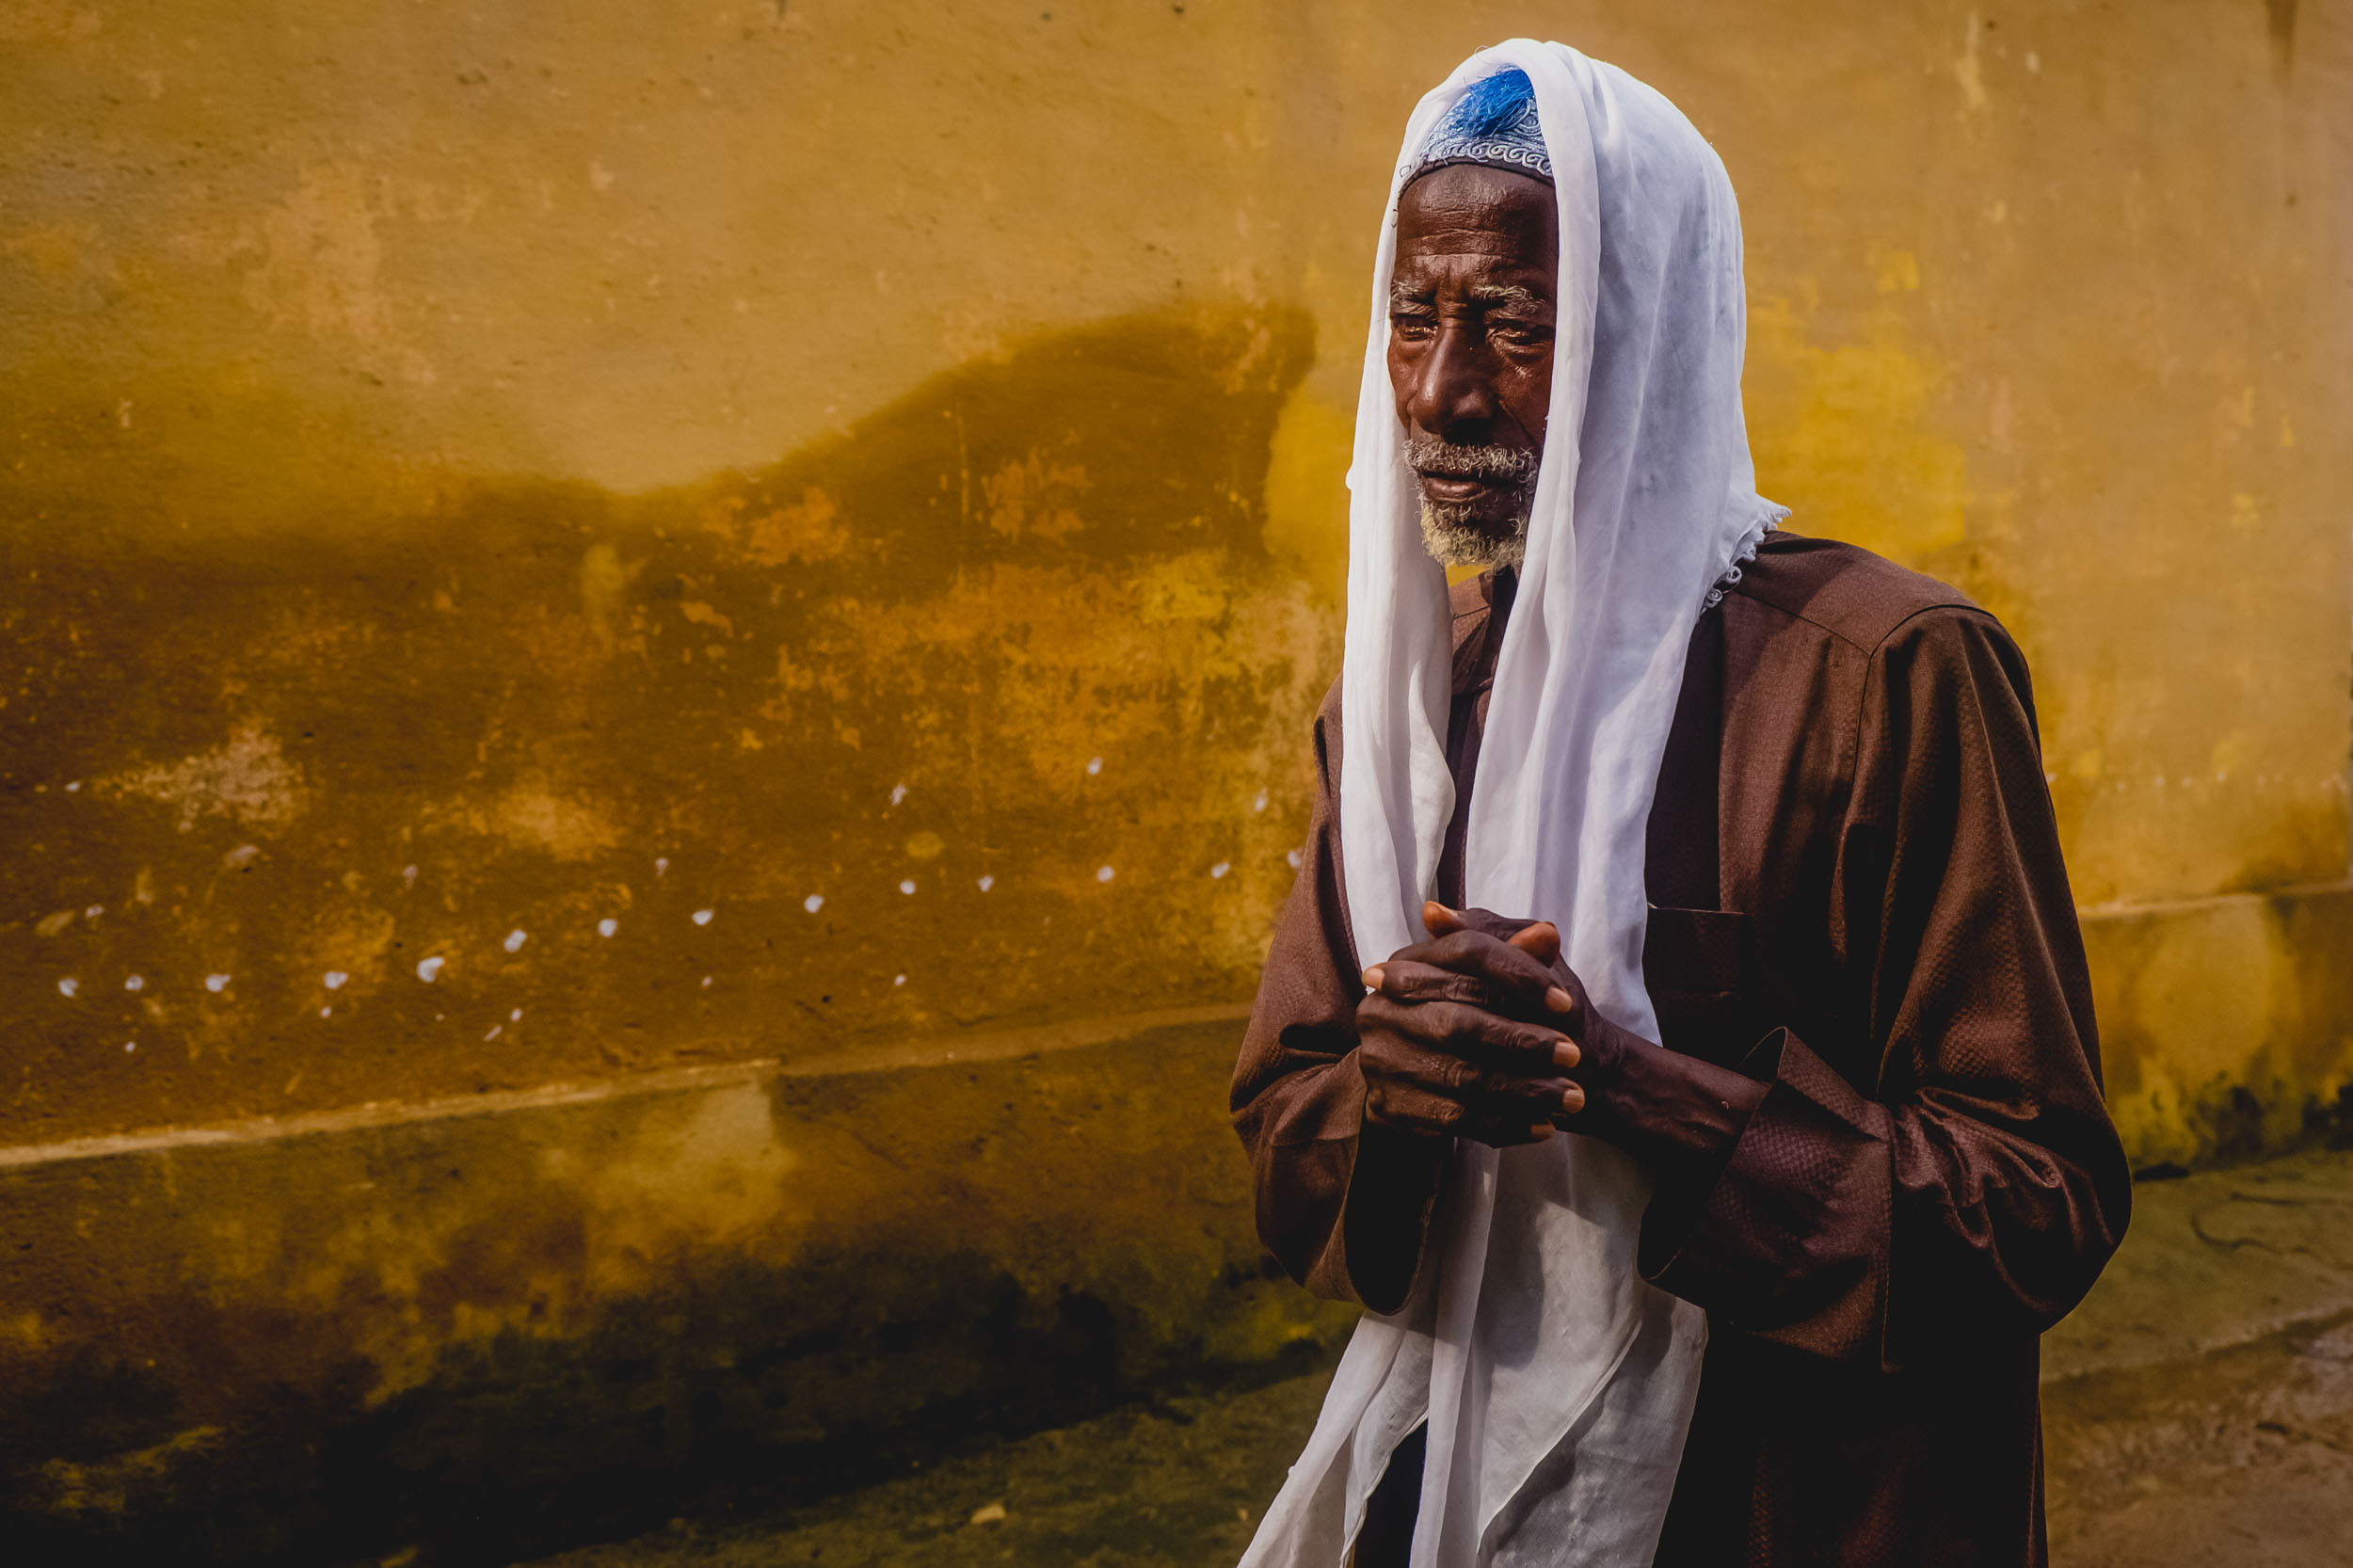 FAITH IN GUINEA: BETWEEN OPENNESS AND RIGORISM